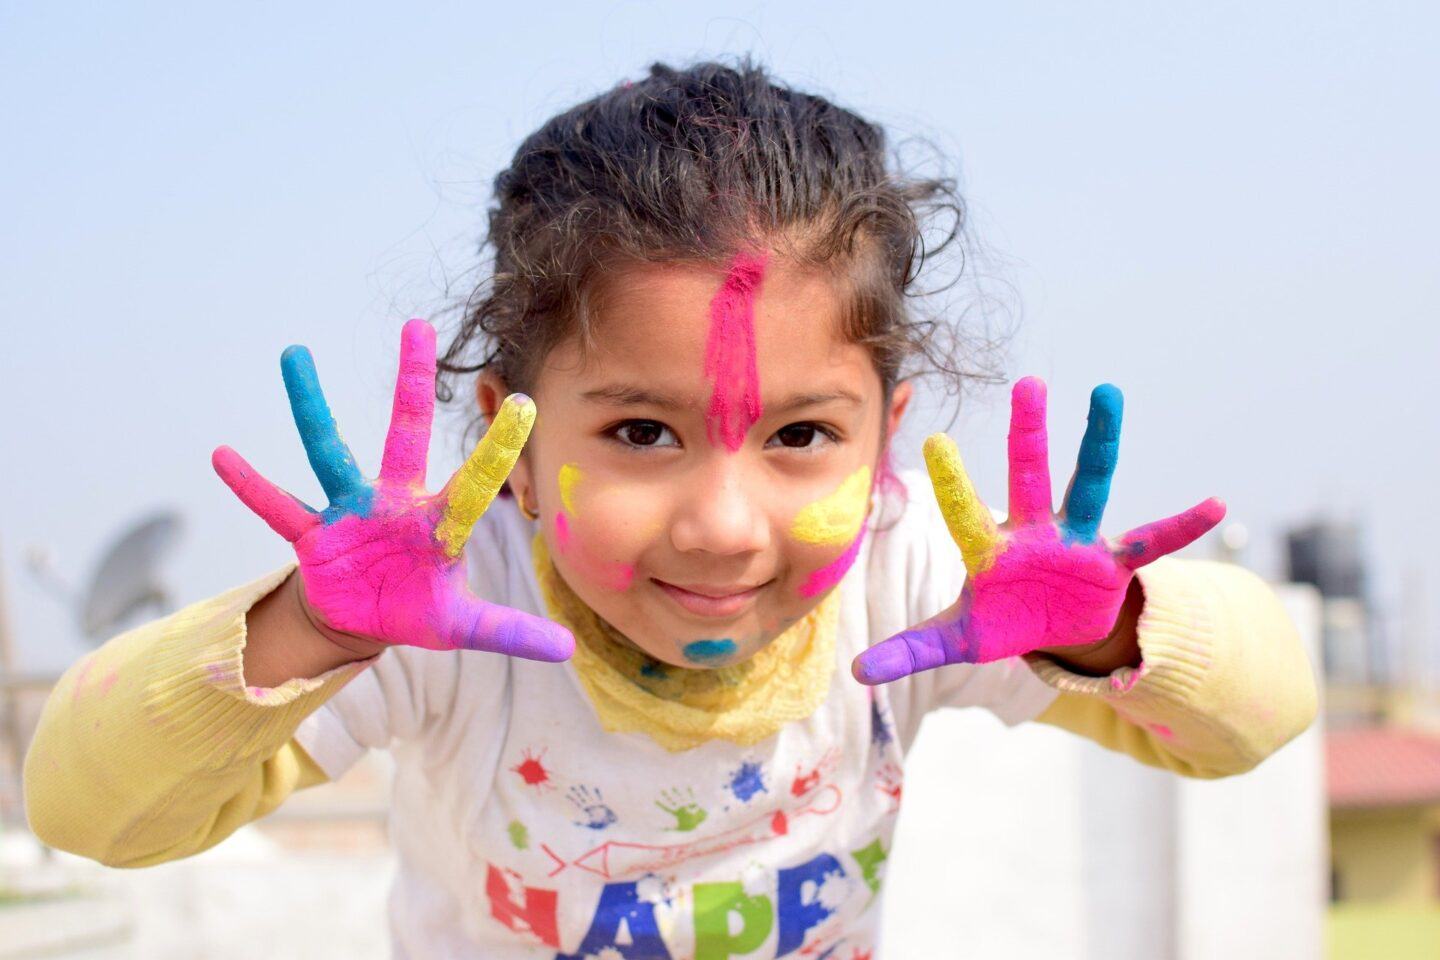 child-with-paint-hands-creativity